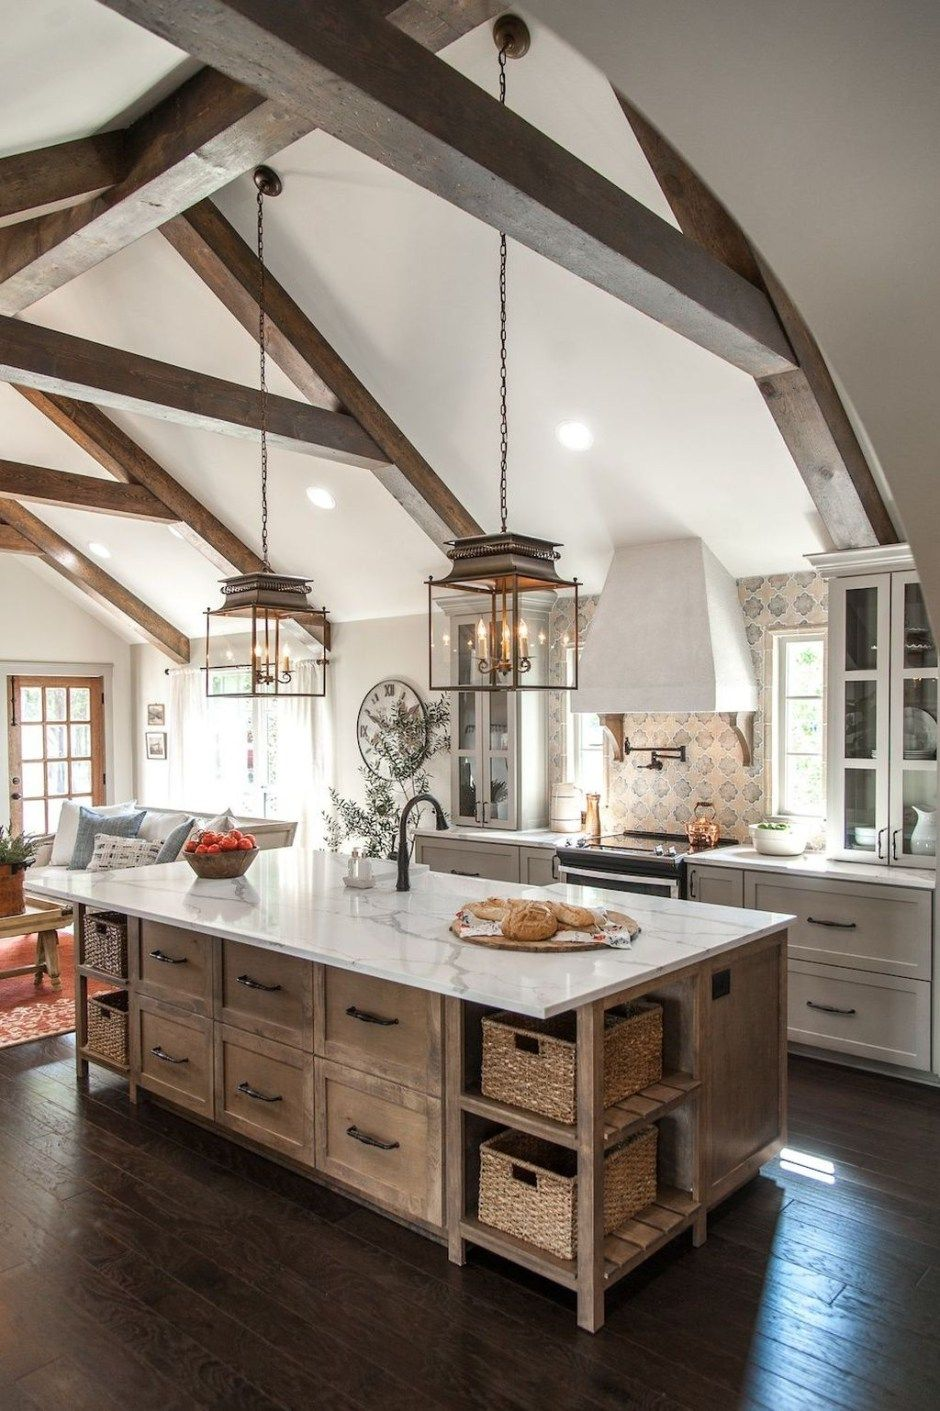 Great Kitchen Decorating Ideas With Farmhouse Style For Your Ordinary Home 06